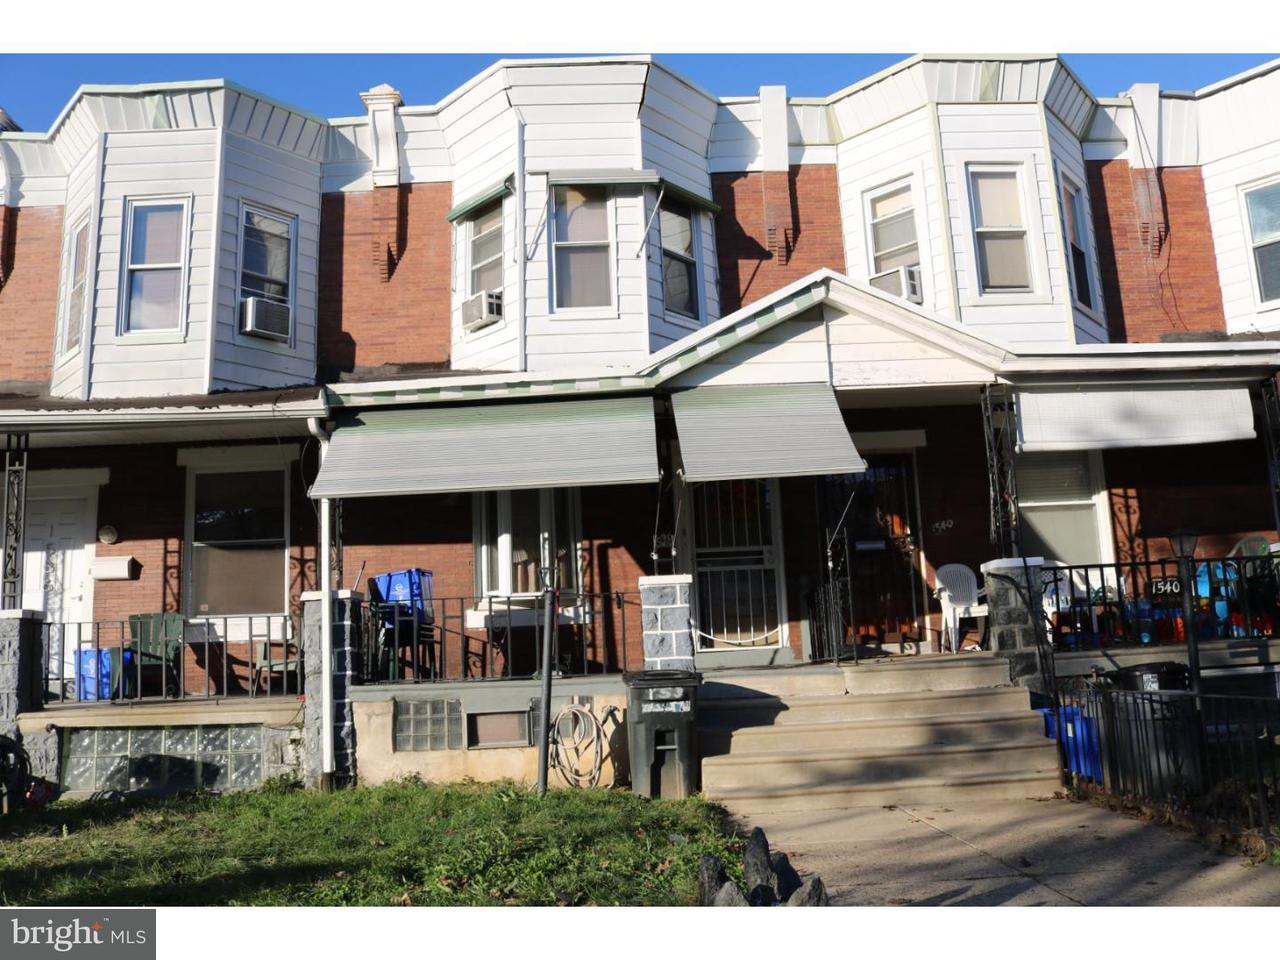 1538 N Allison Philadelphia, PA 19131